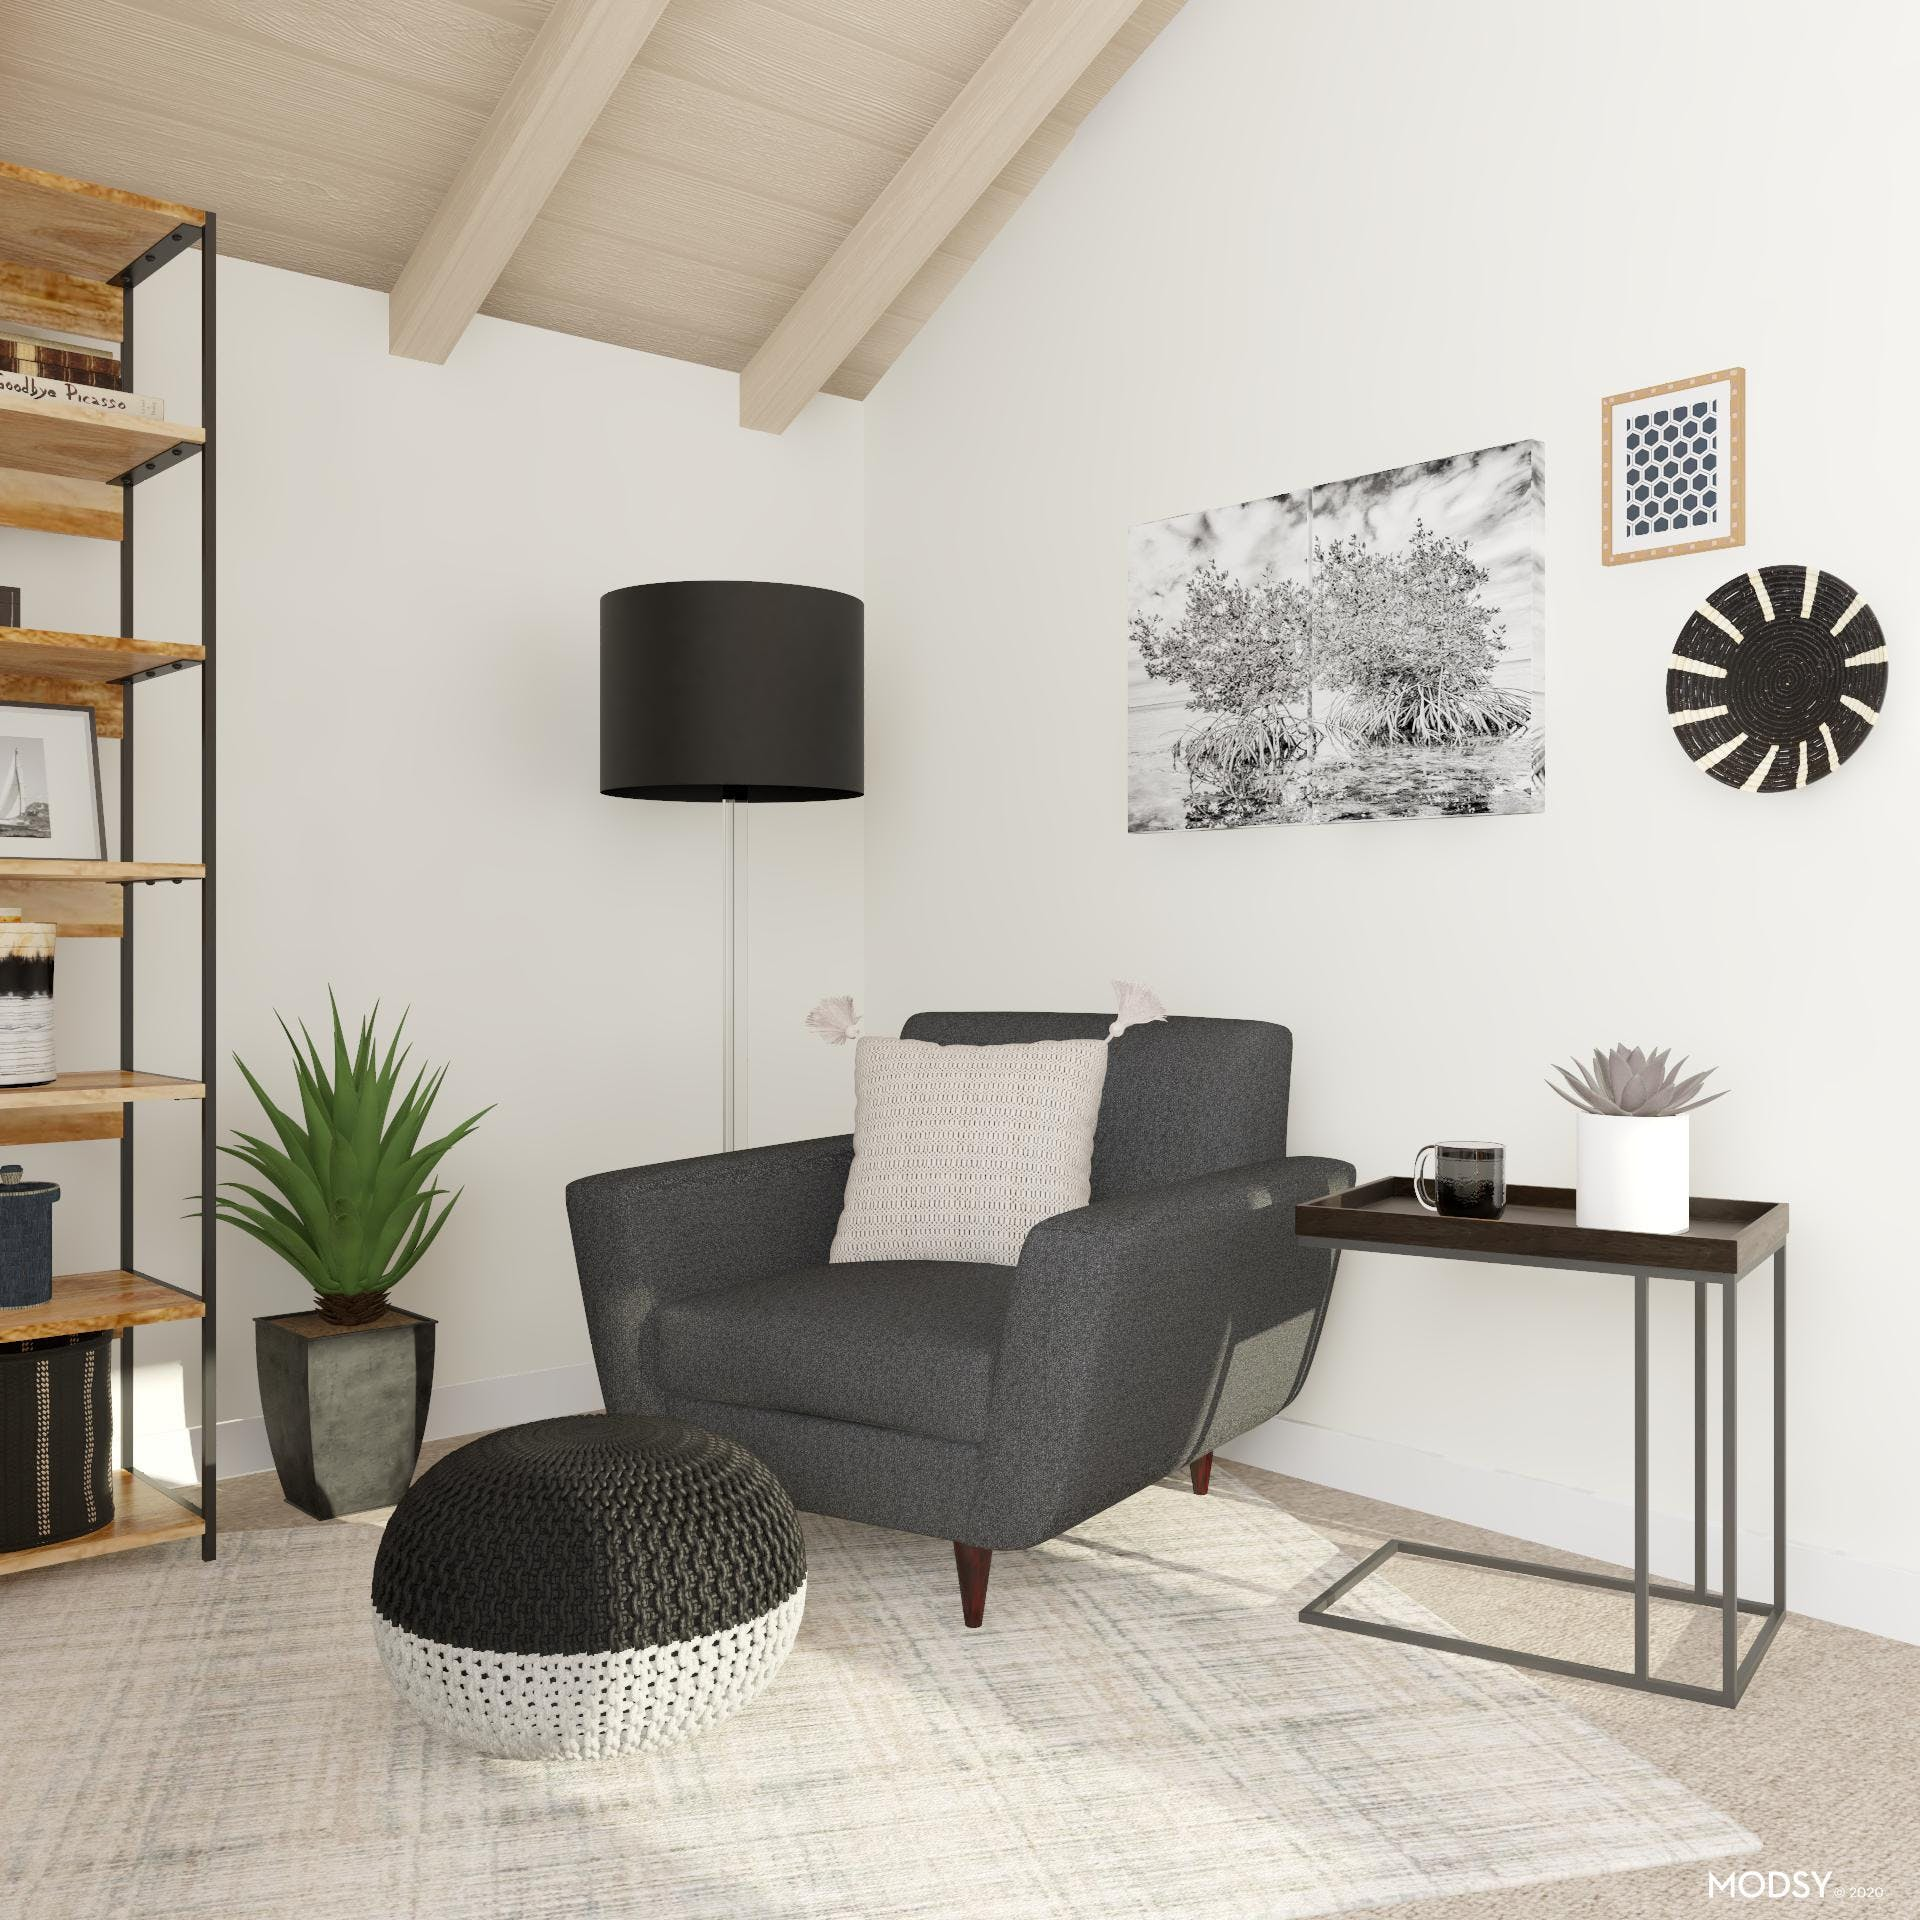 Black and White, A Transitional Study